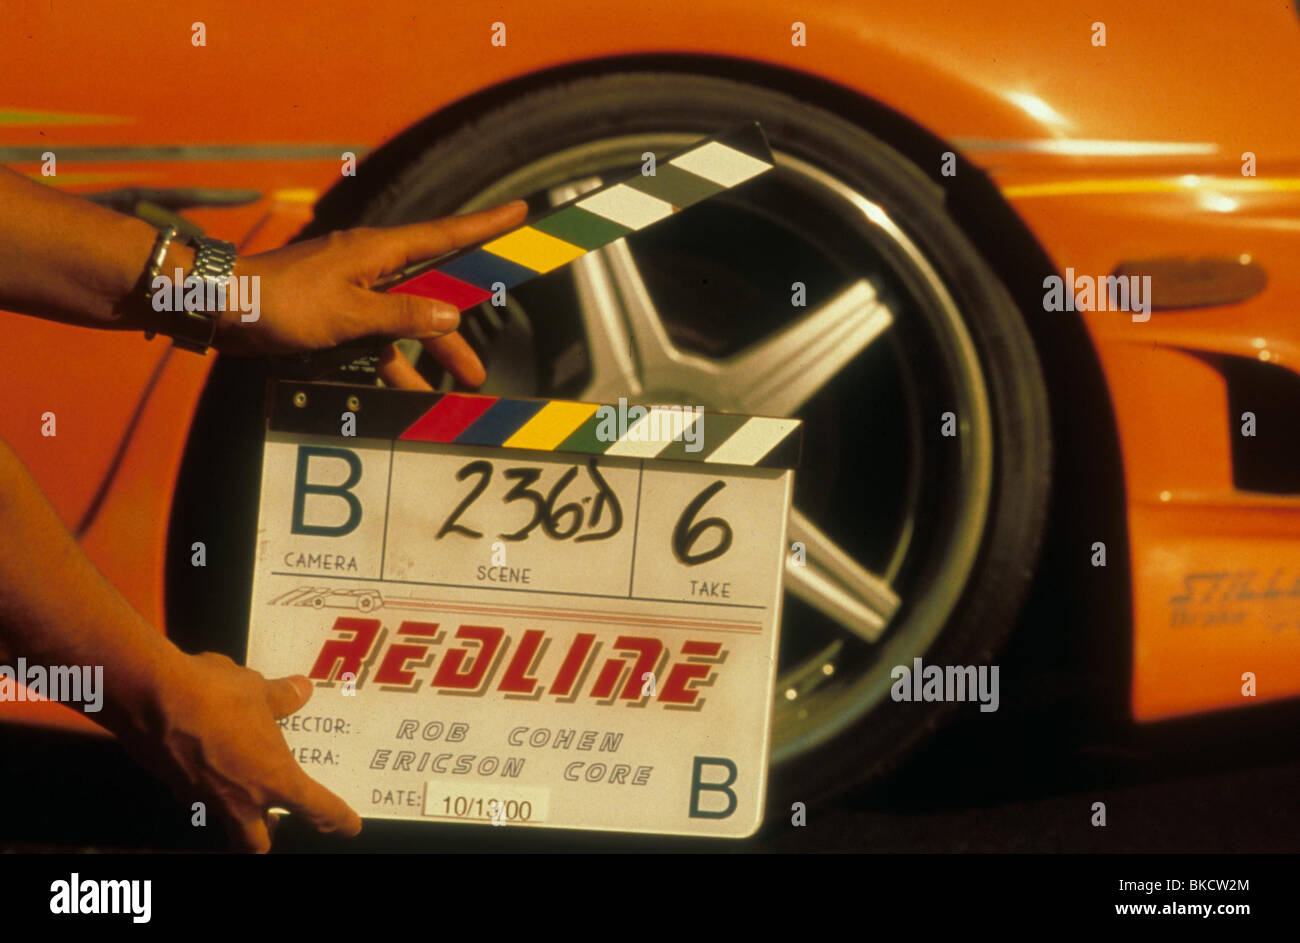 FILMING PRODUCTION (ALT) BEHIND THE SCENES (ALT) LOCATION (ALT) ON SET (ALT) O/S 'THE FAST AND THE FURIOUS' - Stock Image